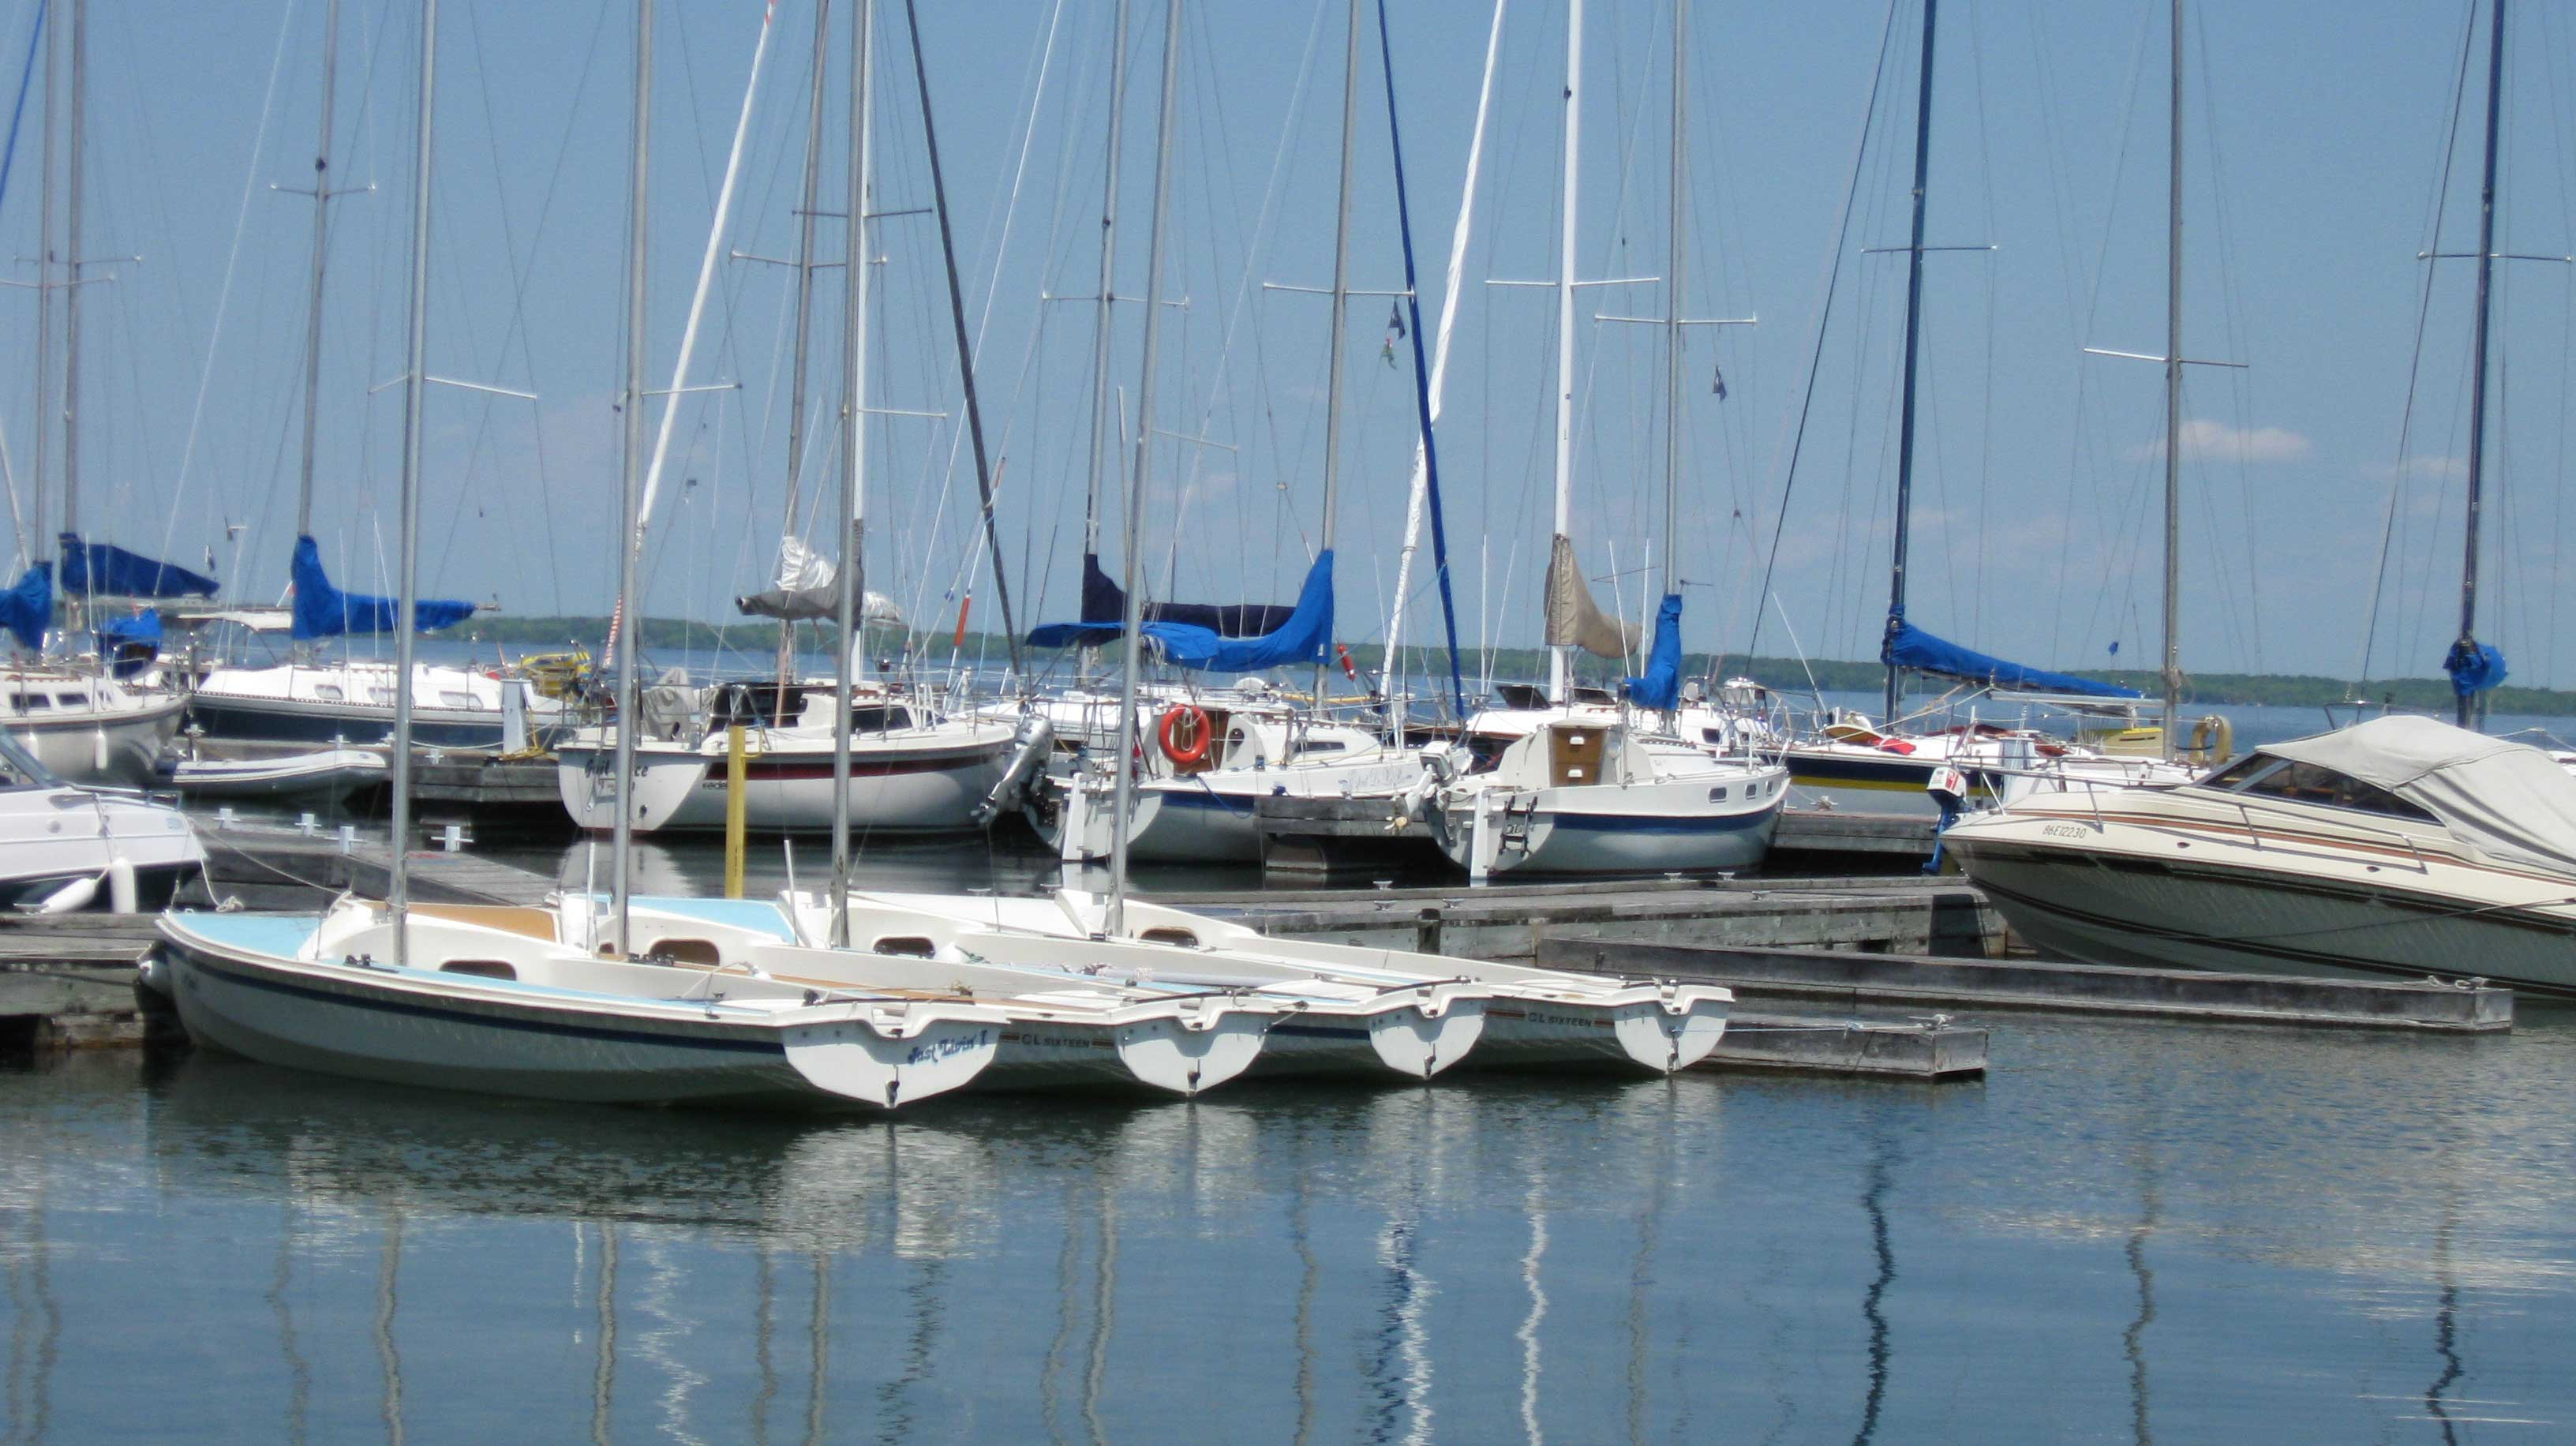 Sailboats docked at Jackson's Point Harbour